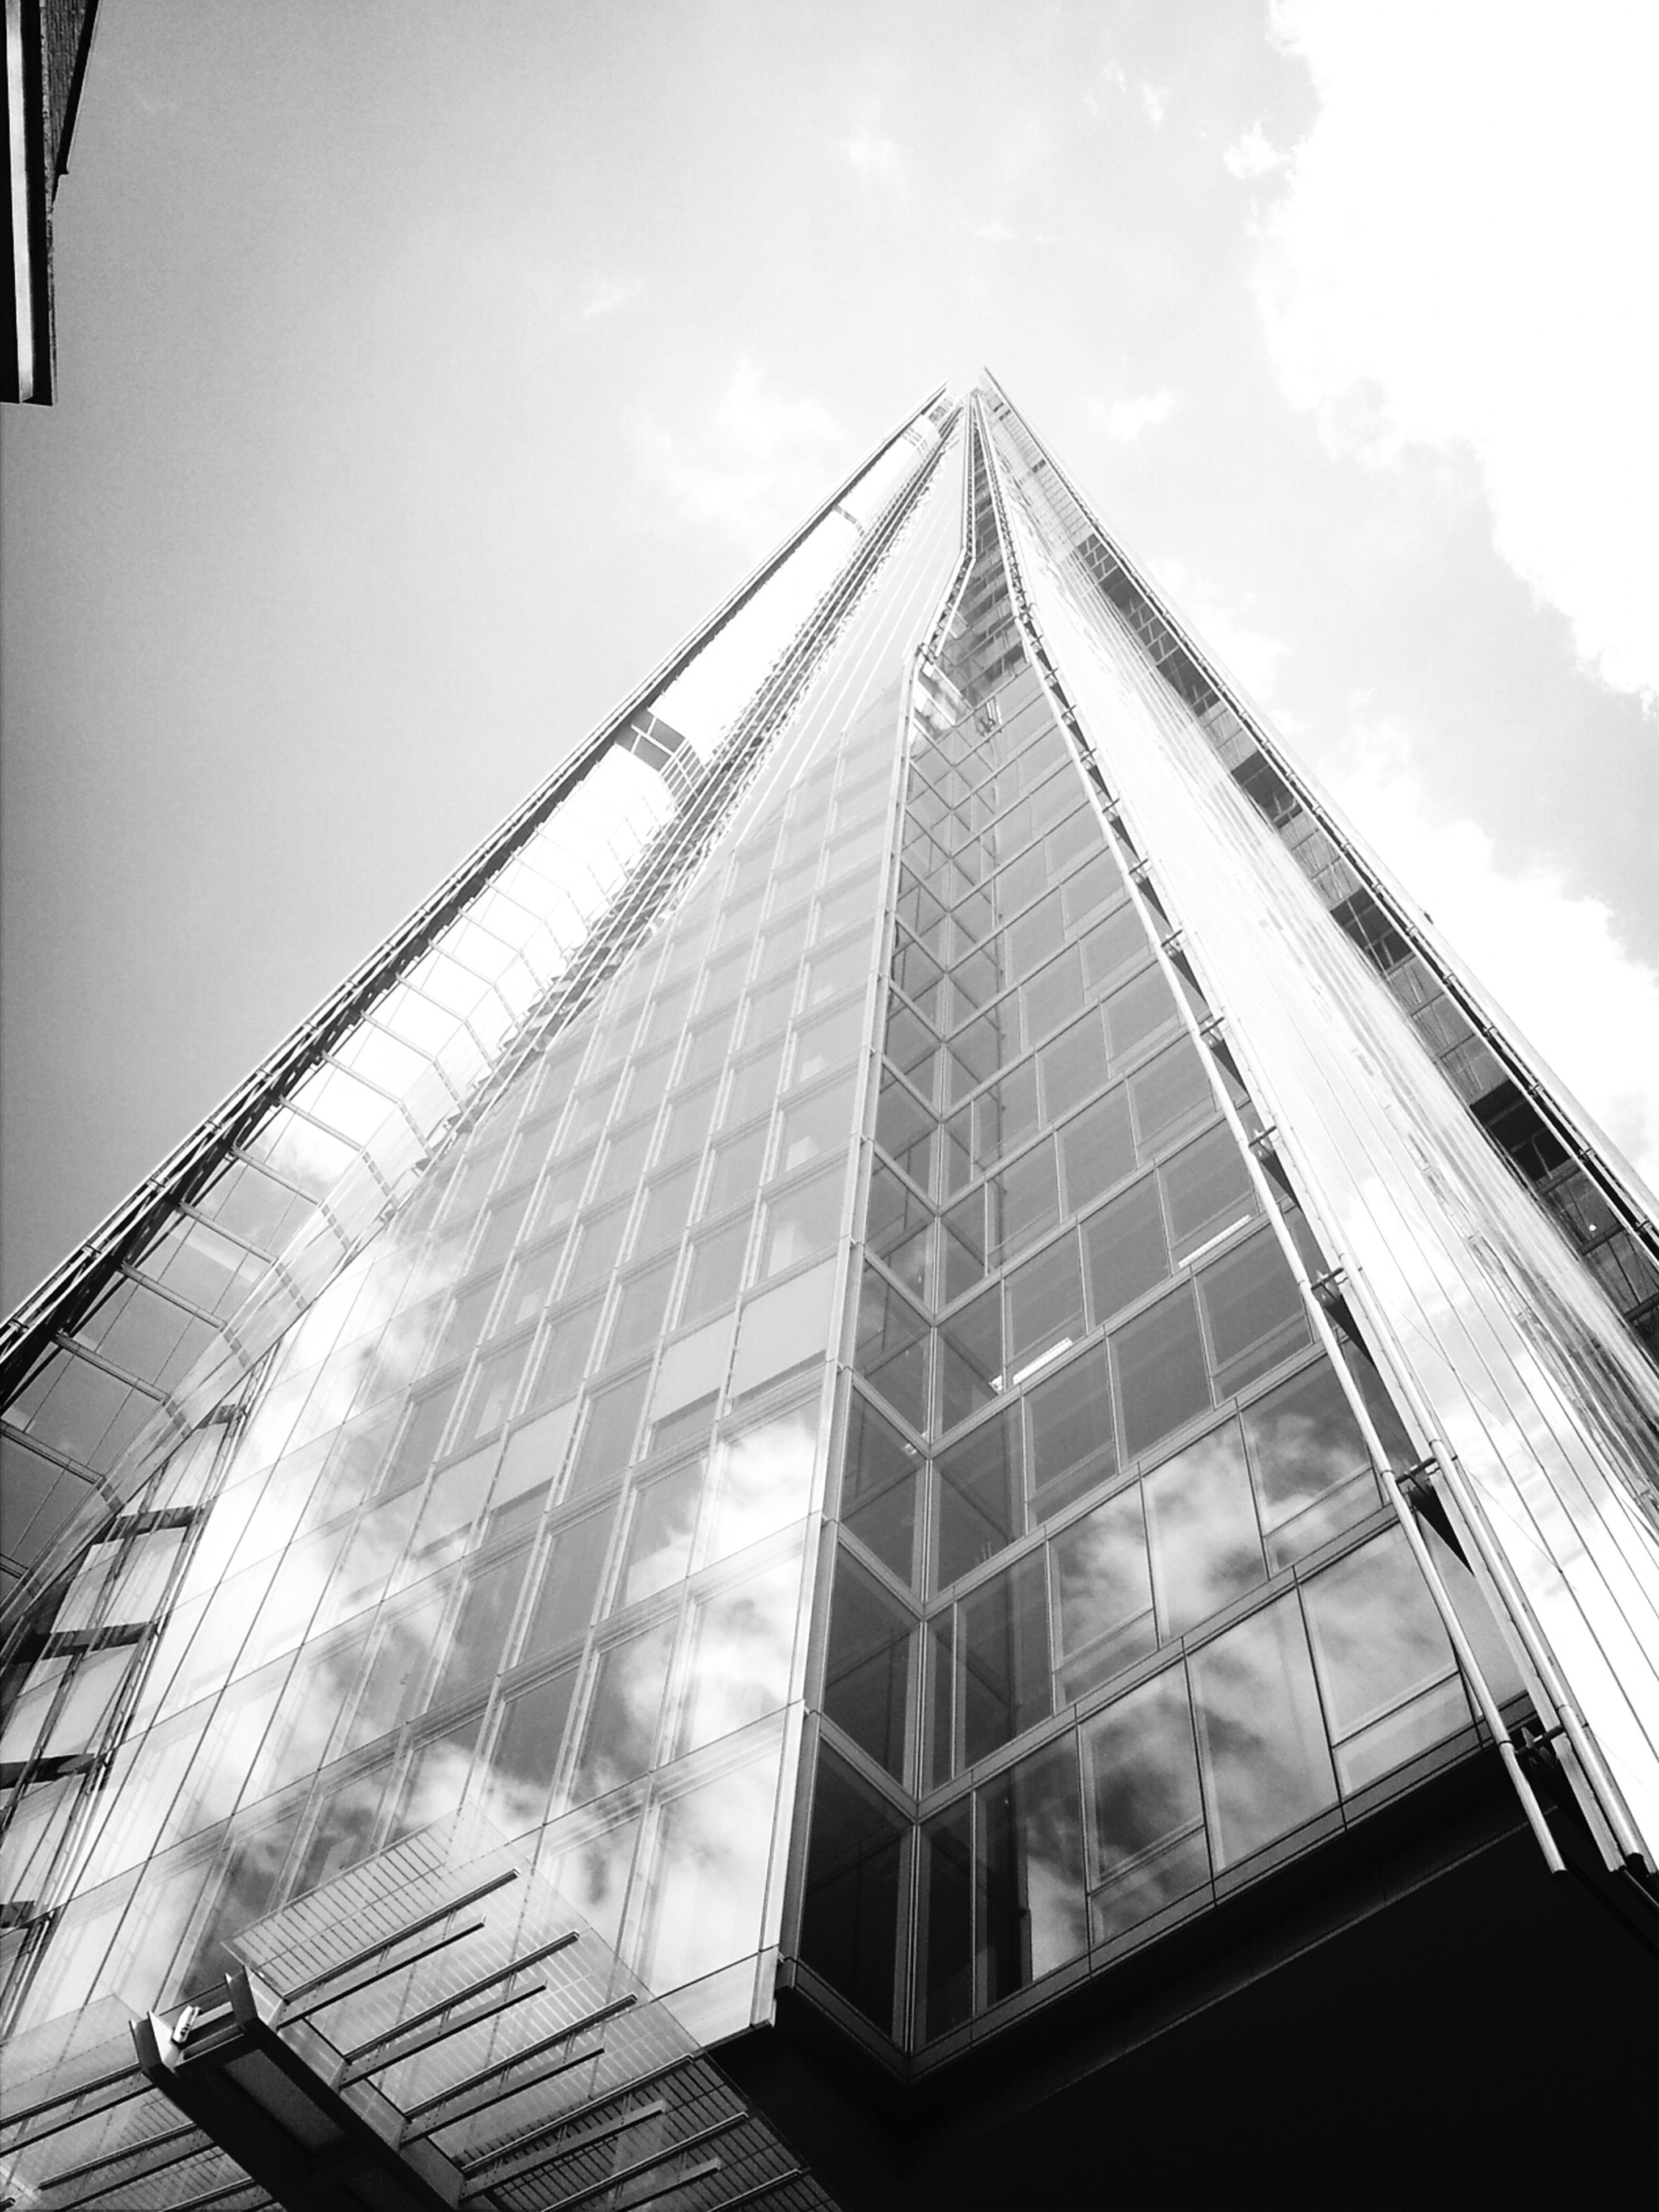 architecture, built structure, building exterior, low angle view, sky, glass - material, modern, city, skyscraper, office building, building, tall - high, reflection, day, cloud - sky, no people, outdoors, window, cloud, development